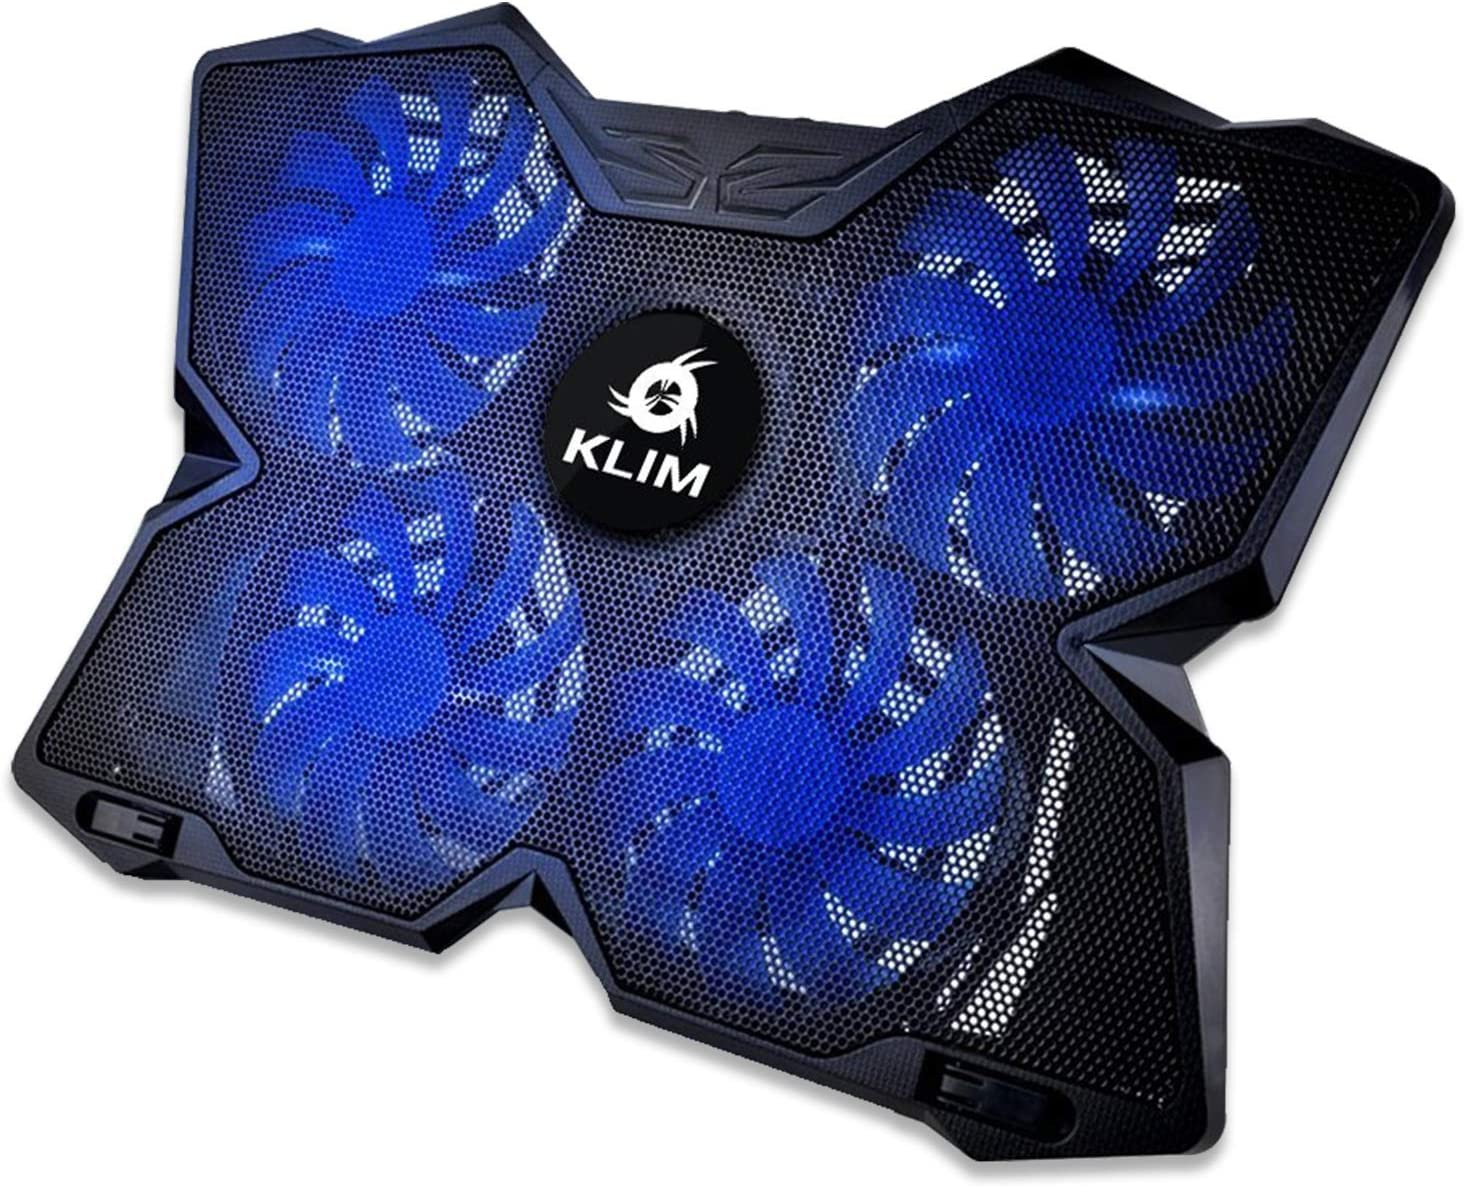 KLIM™ Wind Laptop Cooling Pad - Support 11 to 19 Inches Laptops, PS4 - [ 4 Fans ] - Light, Quiet Rapid Cooling Action - Ergonomic Ventilated Support - Gamer USB Slim Portable Gaming Stand - Blue